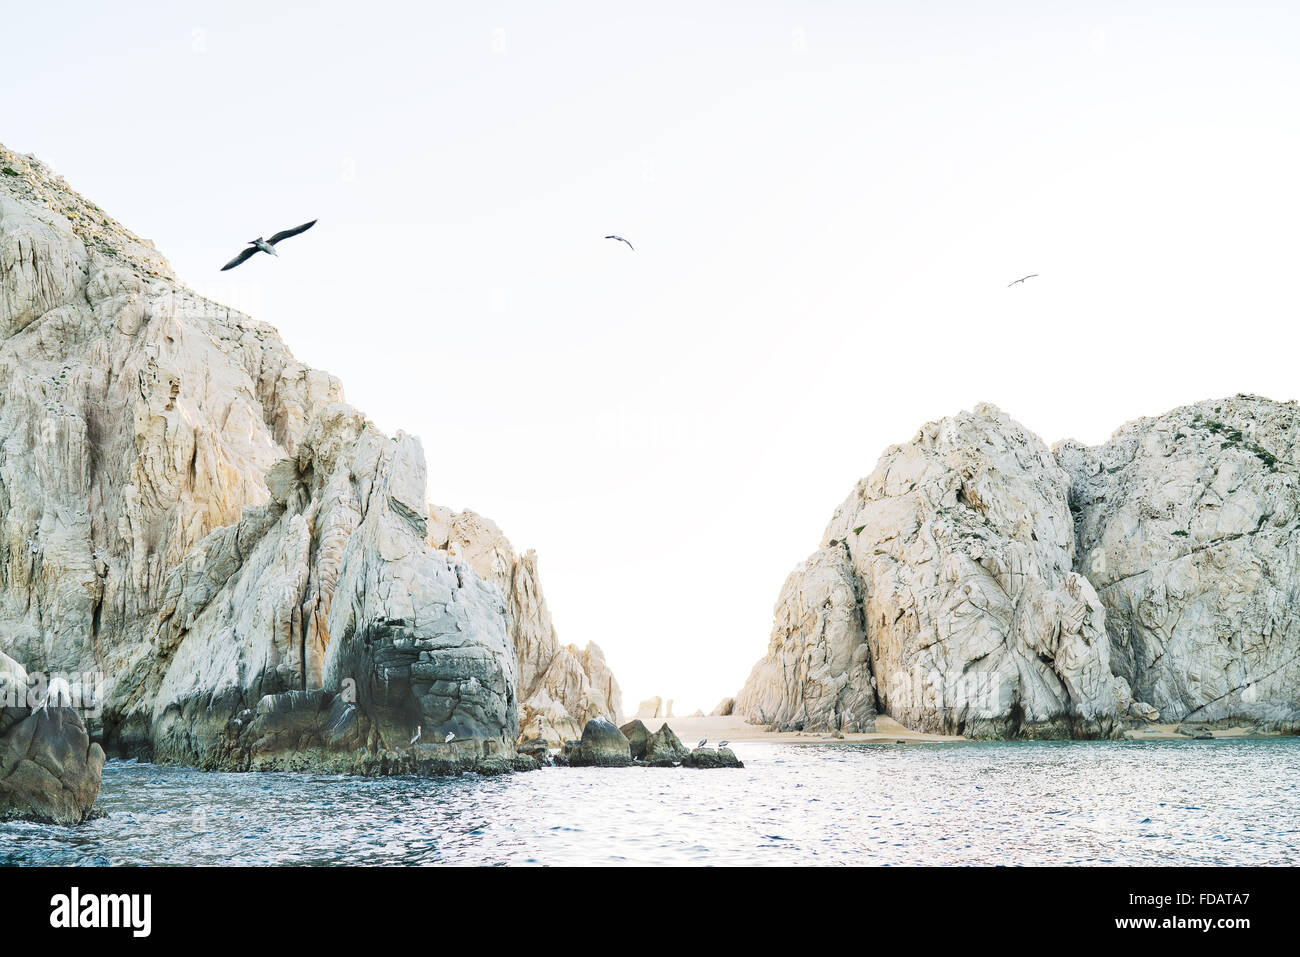 Birds flying over the Pacific Ocean and rocks of Cabo San Lucas, Baja California, Mexico - Stock Image